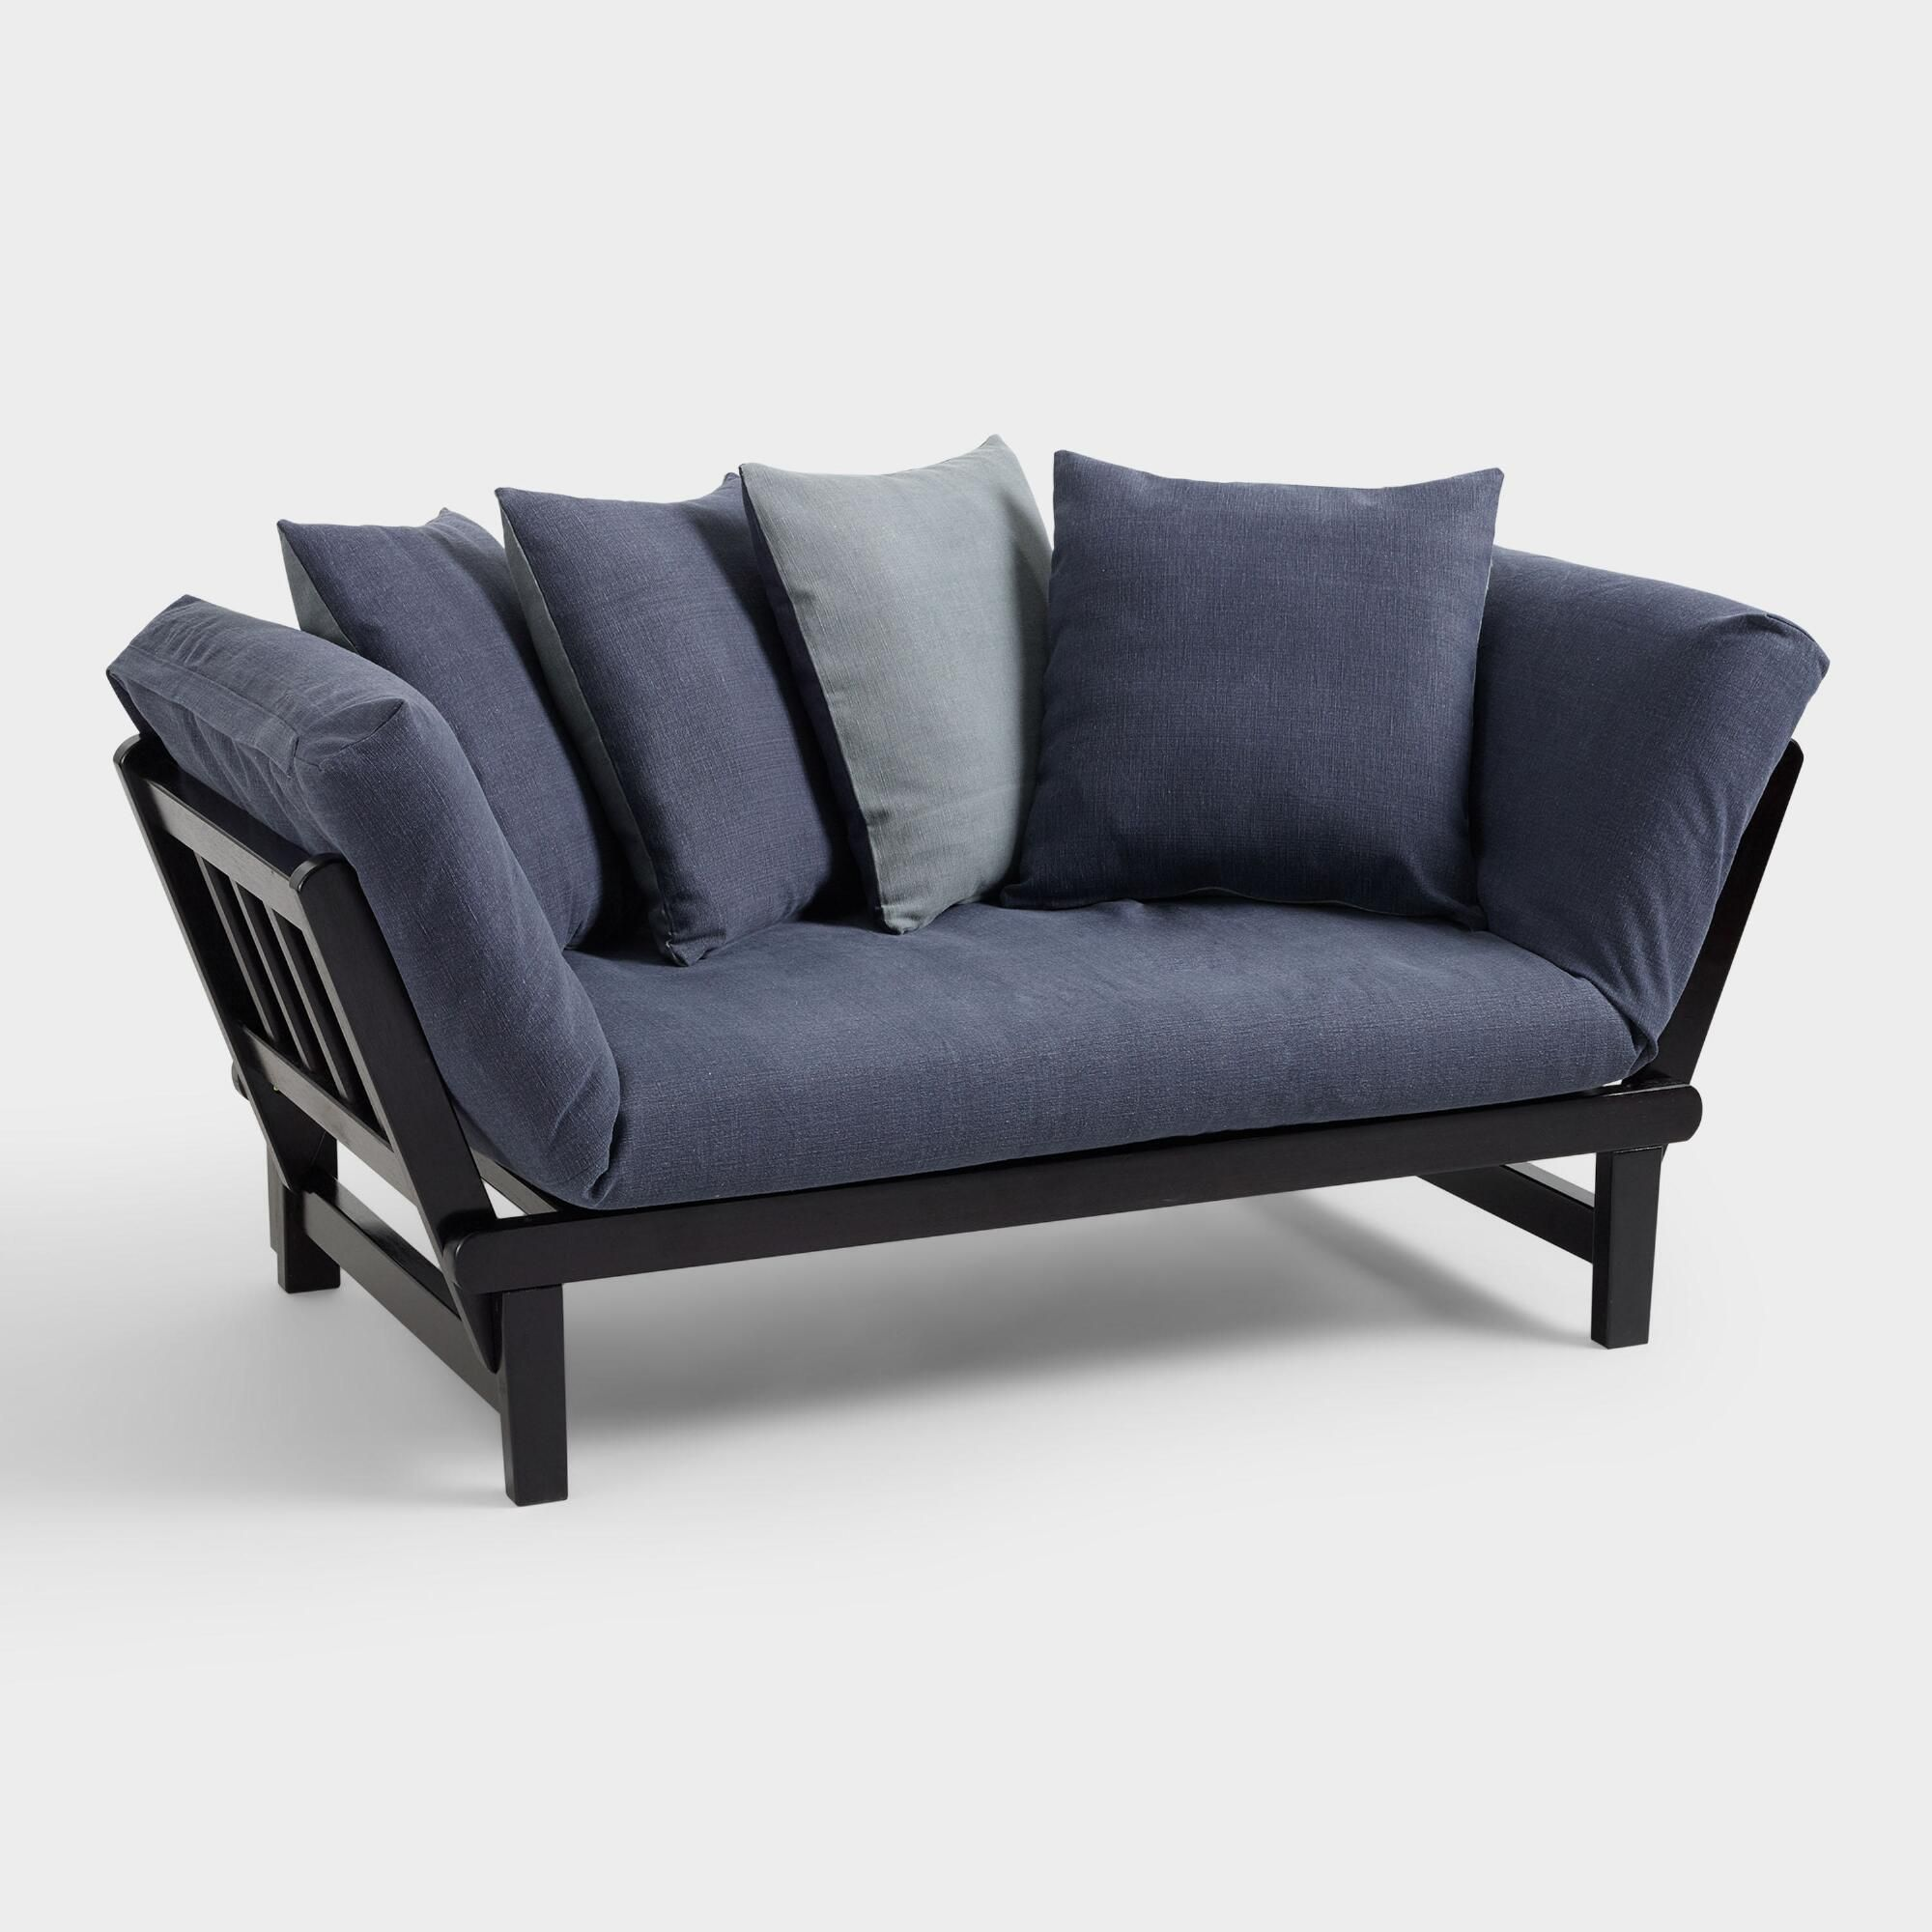 Daybed Sofa Slipcover Upholsterers Near Me Blue And Gray Studio Day By World Market In 2019